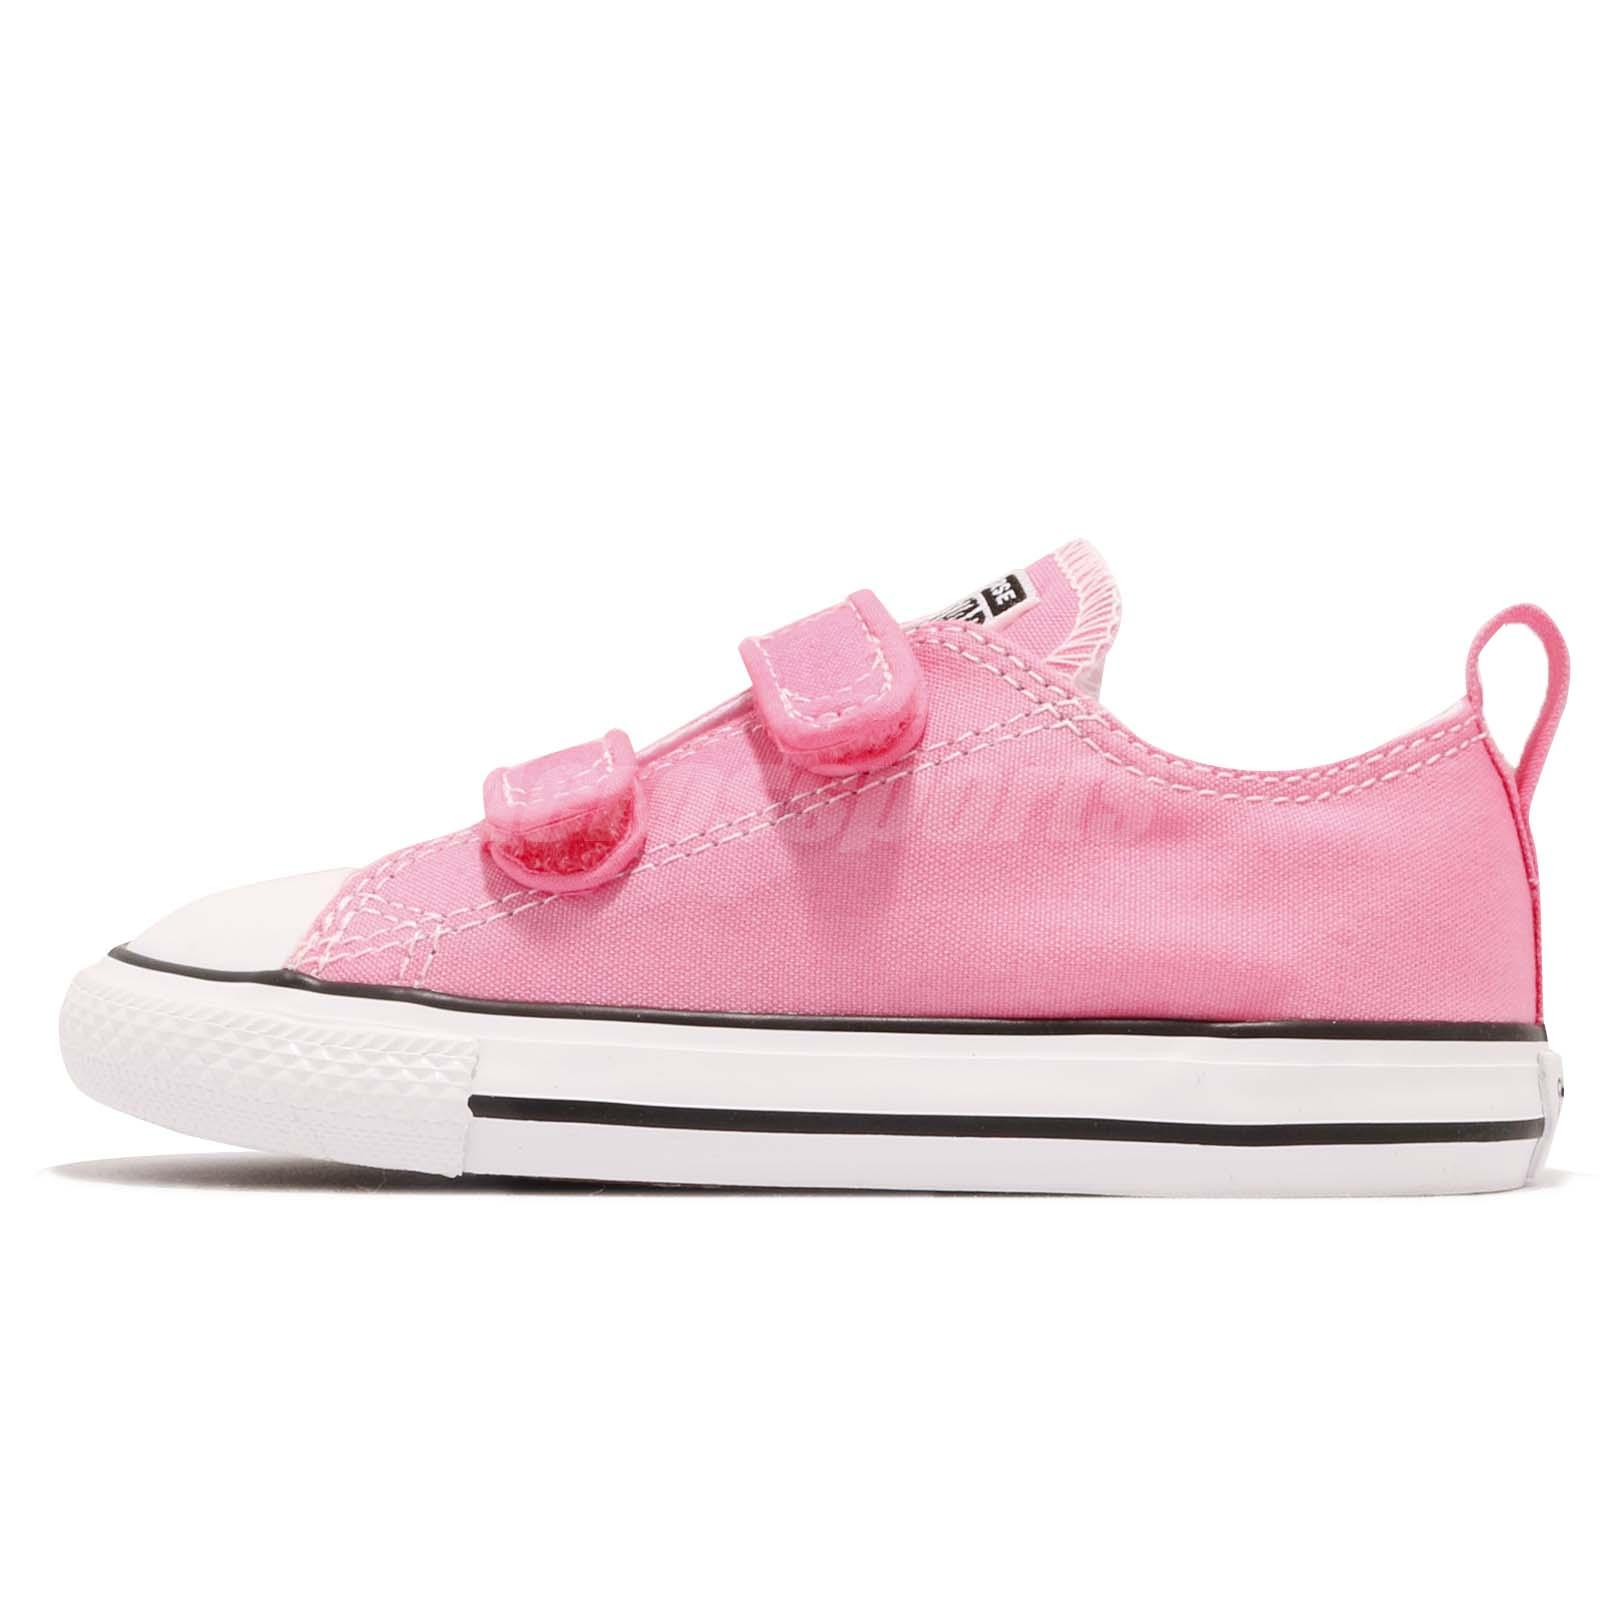 Converse Chuck Taylor All Star V Td Pink White Toddler Infant Baby